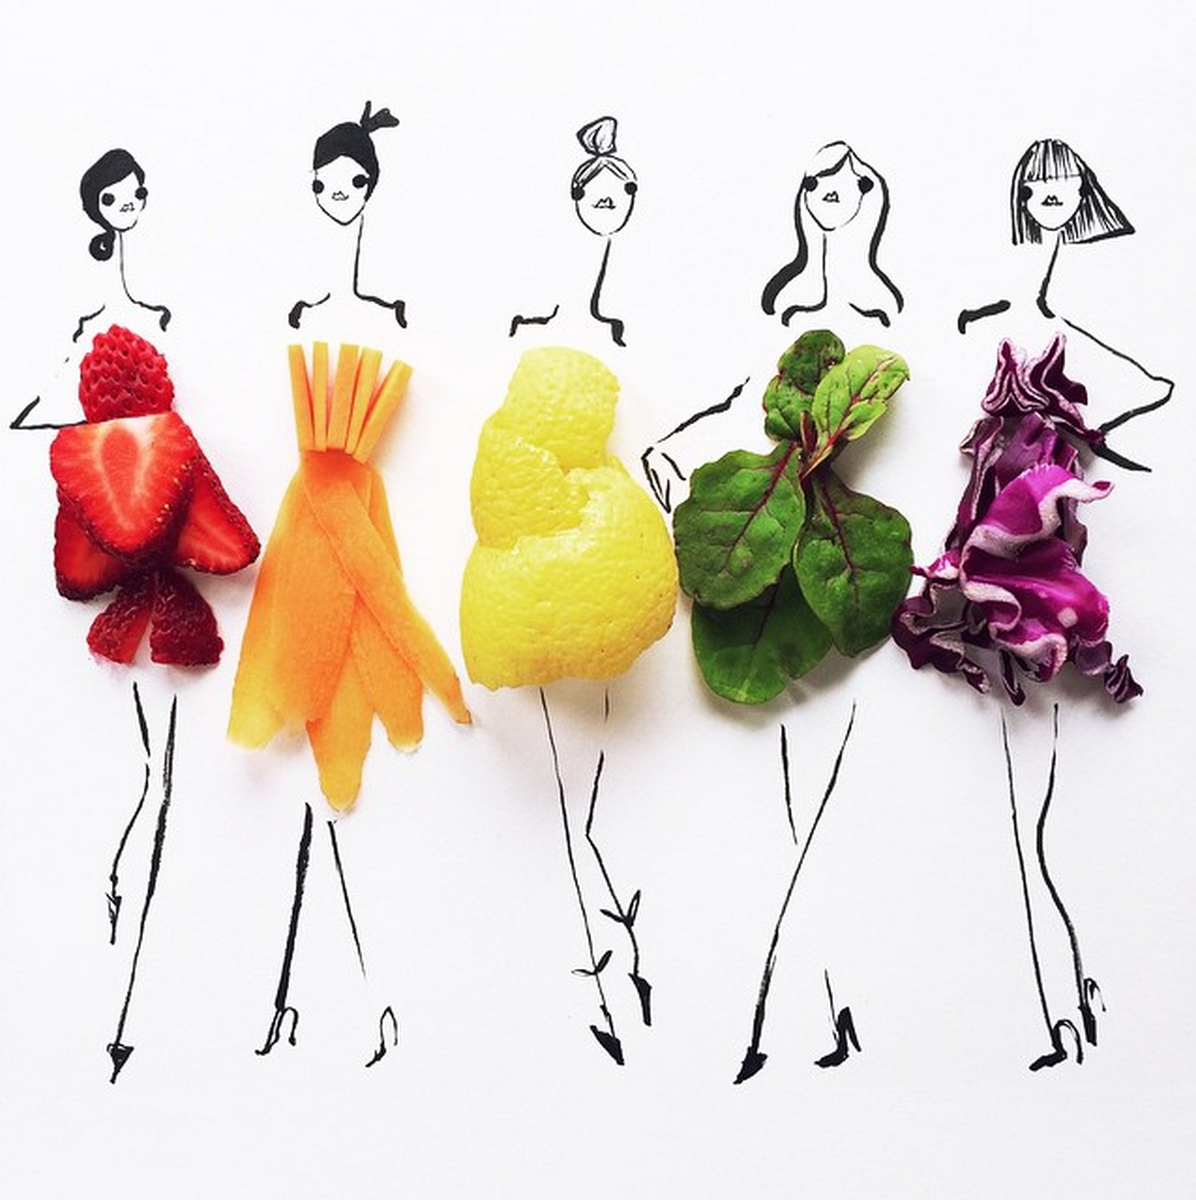 Food Fashion Sketches - Rainbow Fruit and Vegetables Girls